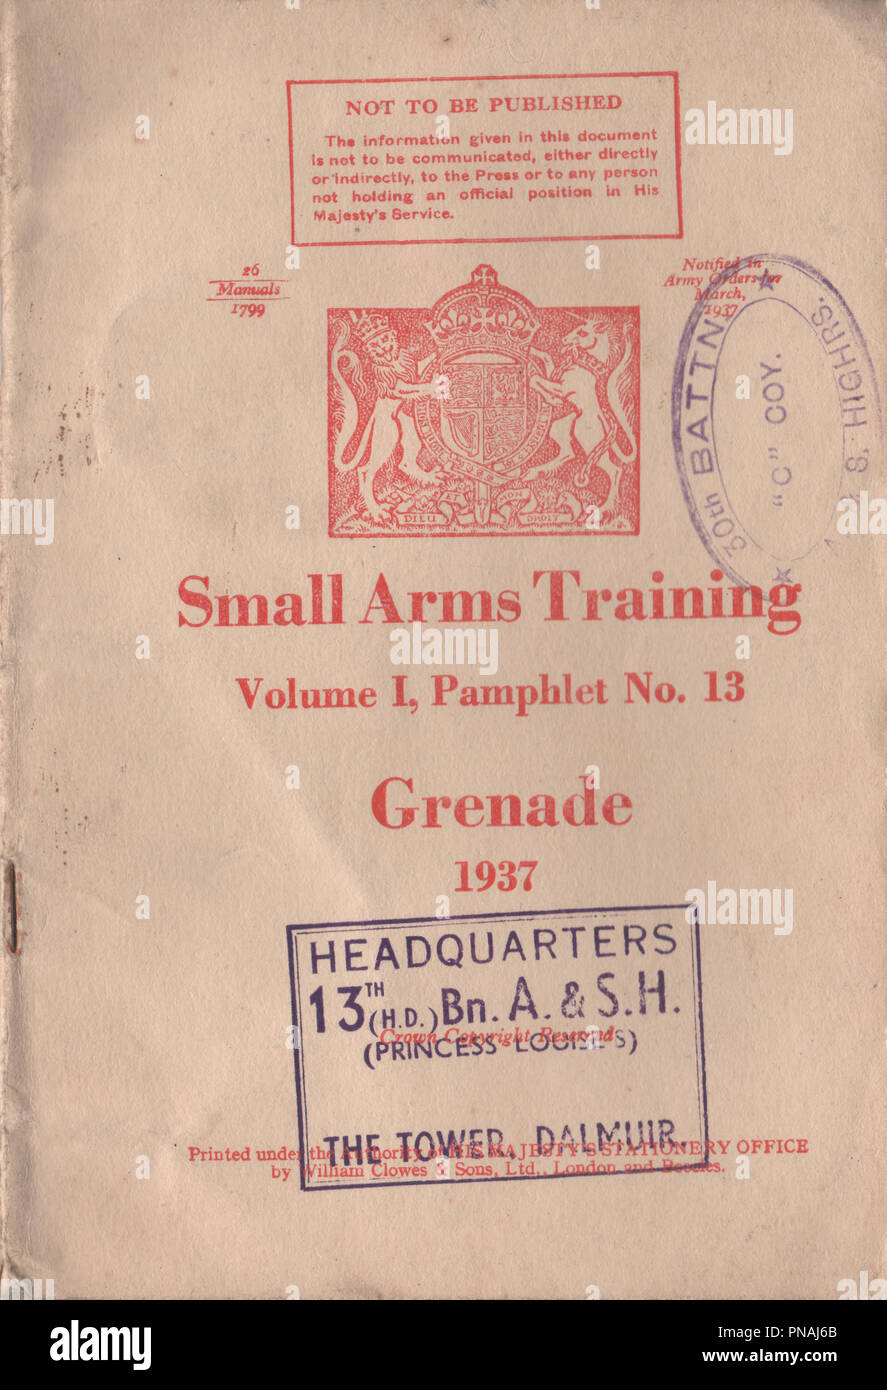 Small Arms Training Manual volume 1 pamphlet number 13 Grenade or Mills bomb published in 1937 by the war office to provide instruction to British military personnel on how to use the hand grenade during the pre-war period and World War Two - Stock Image